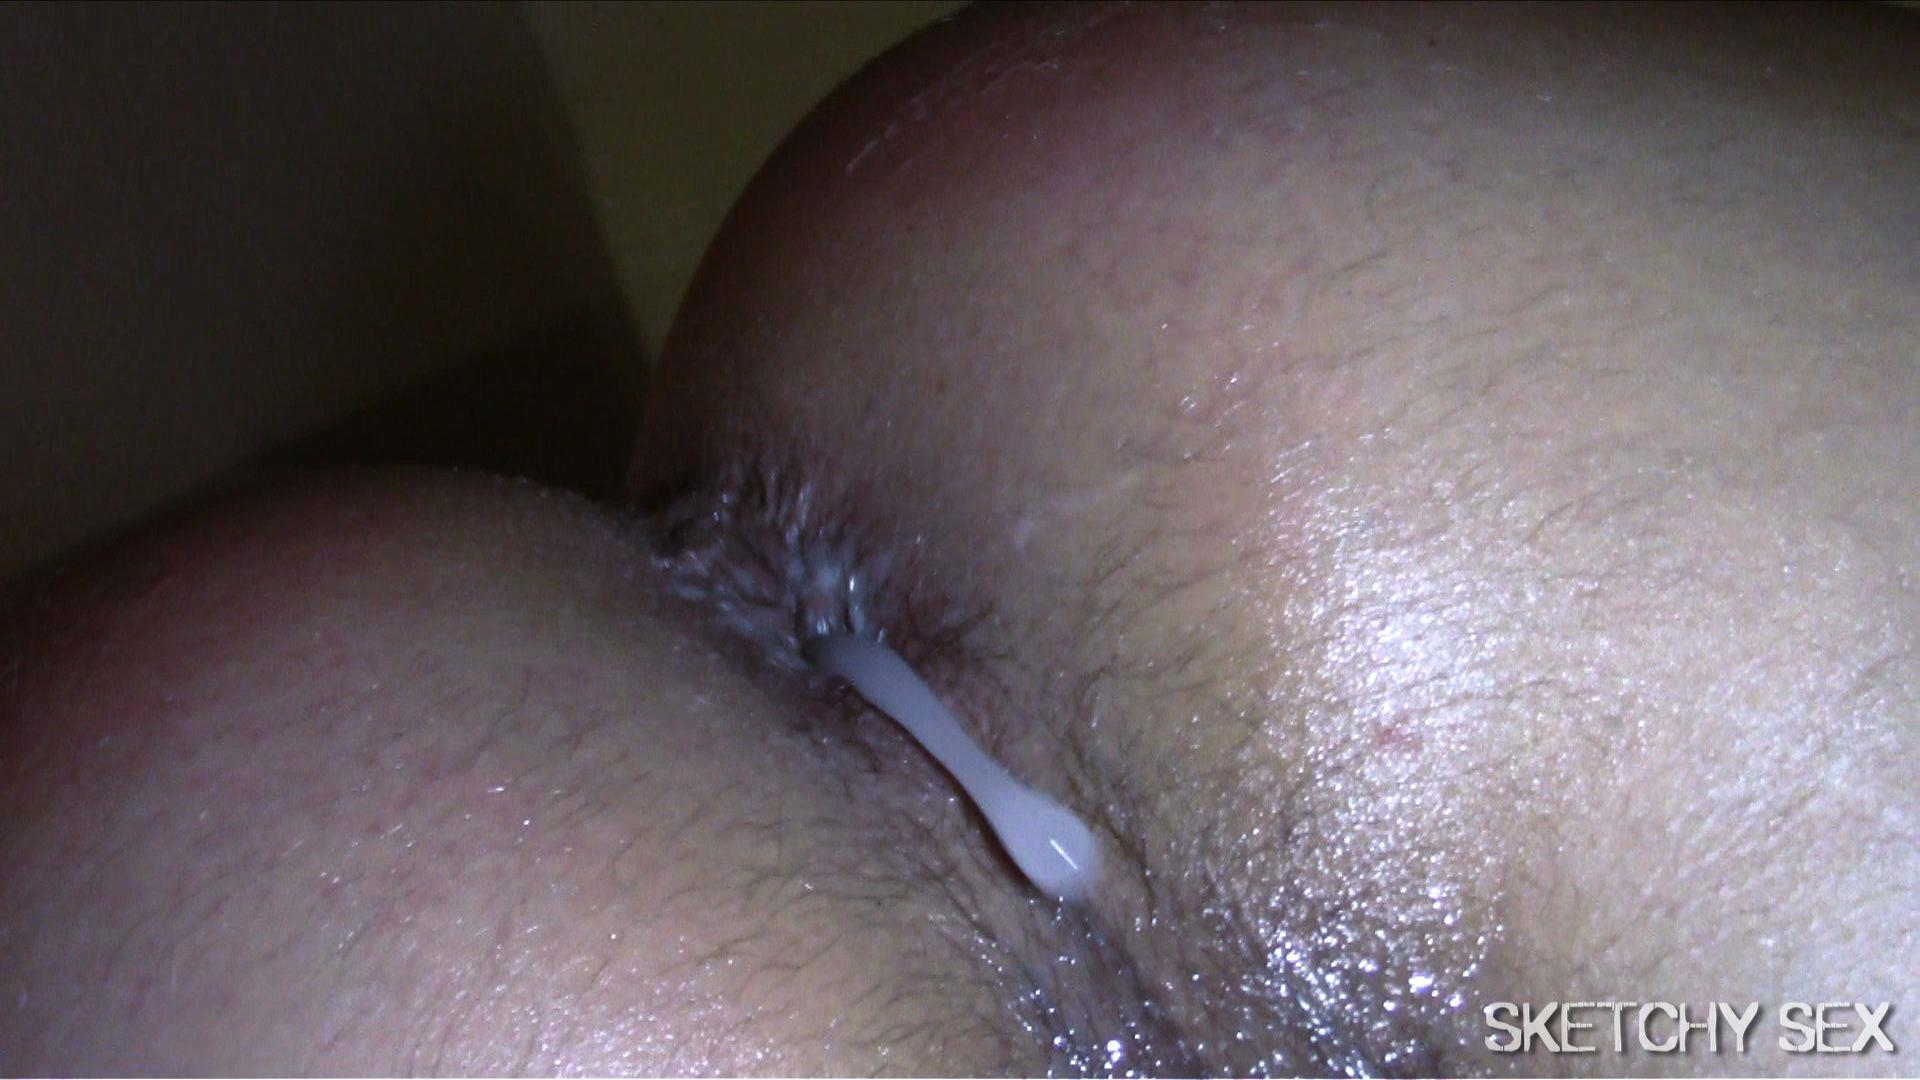 Sketchy-Sex-Anonymous-Bareback-Sex-Party-Cum-Dripping-Holes-32 Getting Bred By As Many Anonymous Dicks As Possible